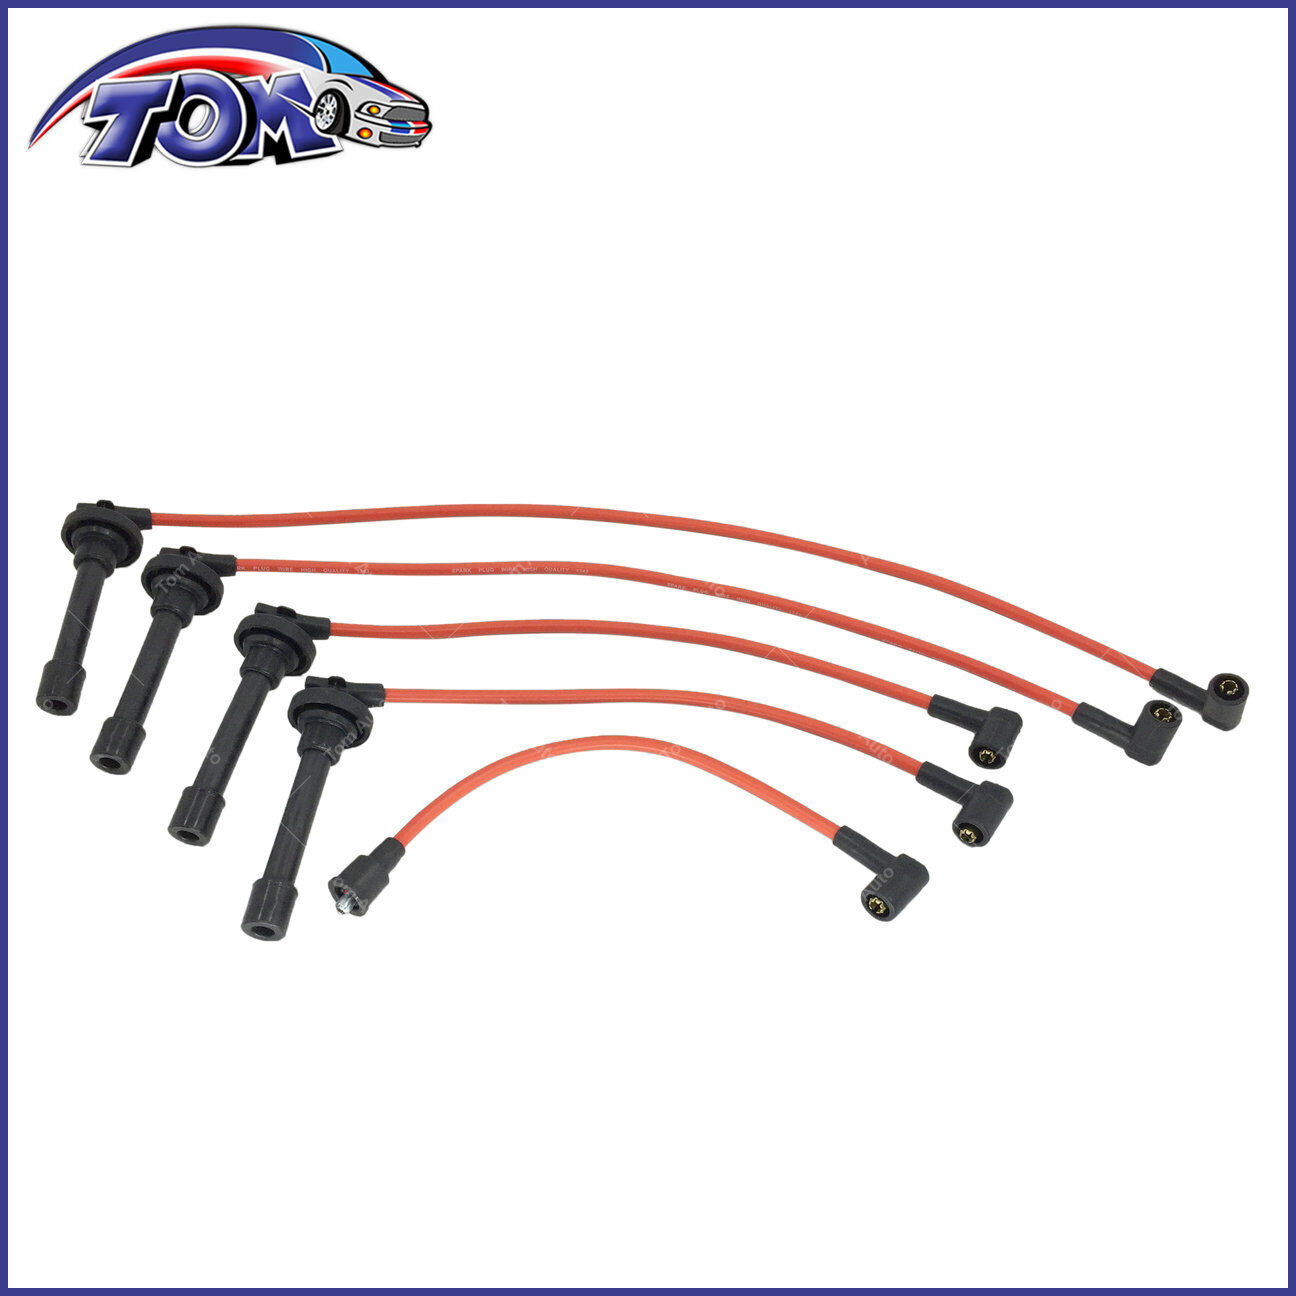 hight resolution of details about brand new spark plug wire set for honda accord civic del sol spiral core 92 02